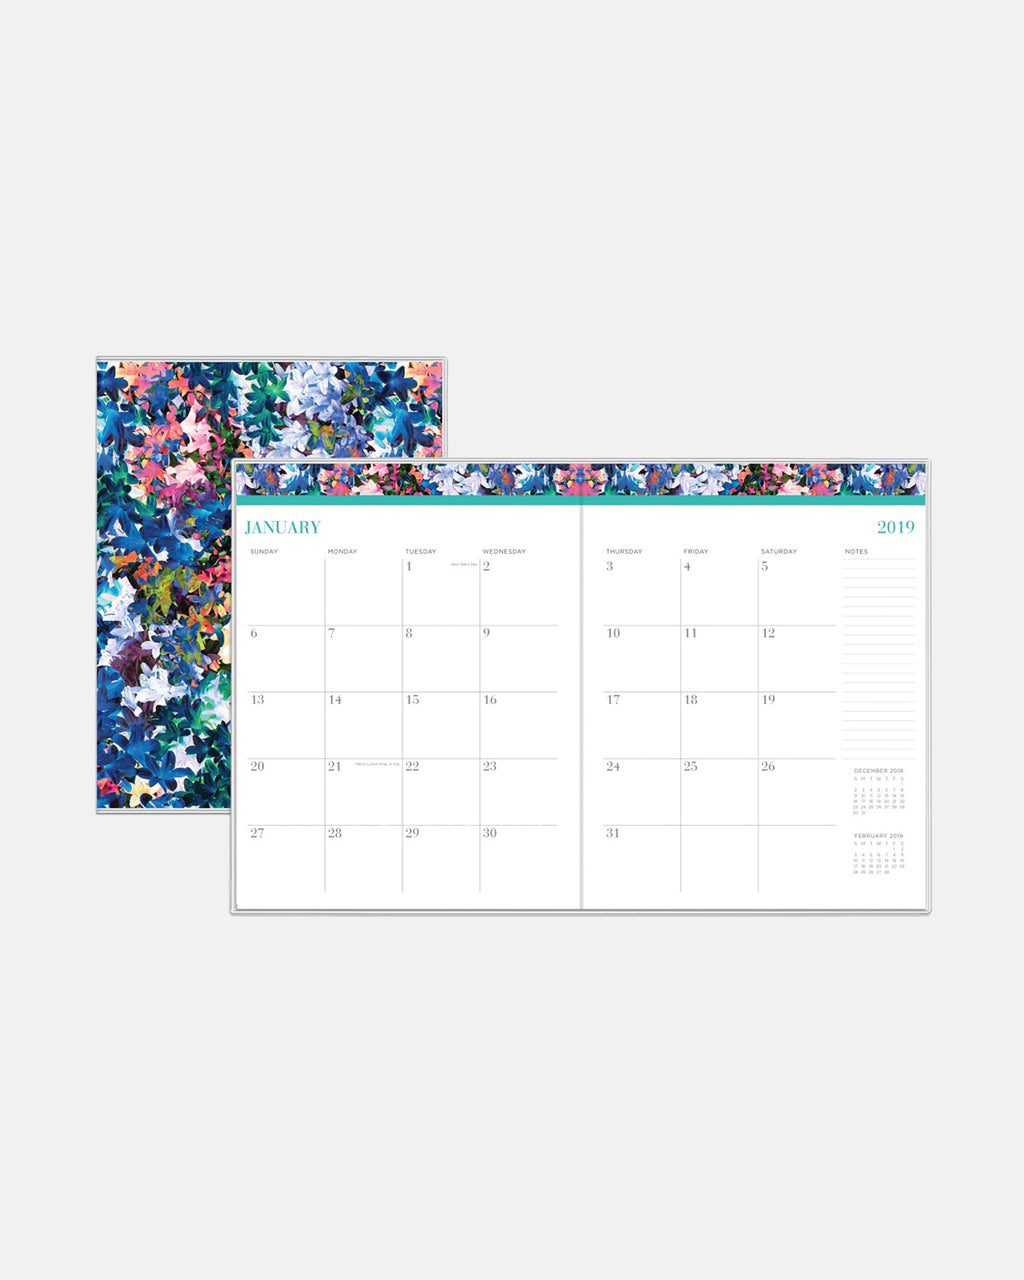 "PP10026 - Tie-Dye Flowers 2019 Weekly And Monthly Planner - 5"" X 8"" - accessories - stationary - 12 months, january to december 2 pages per month pages are wirebound with a polypropylene cover untimed appointments allow you to maintain a customized schedule"